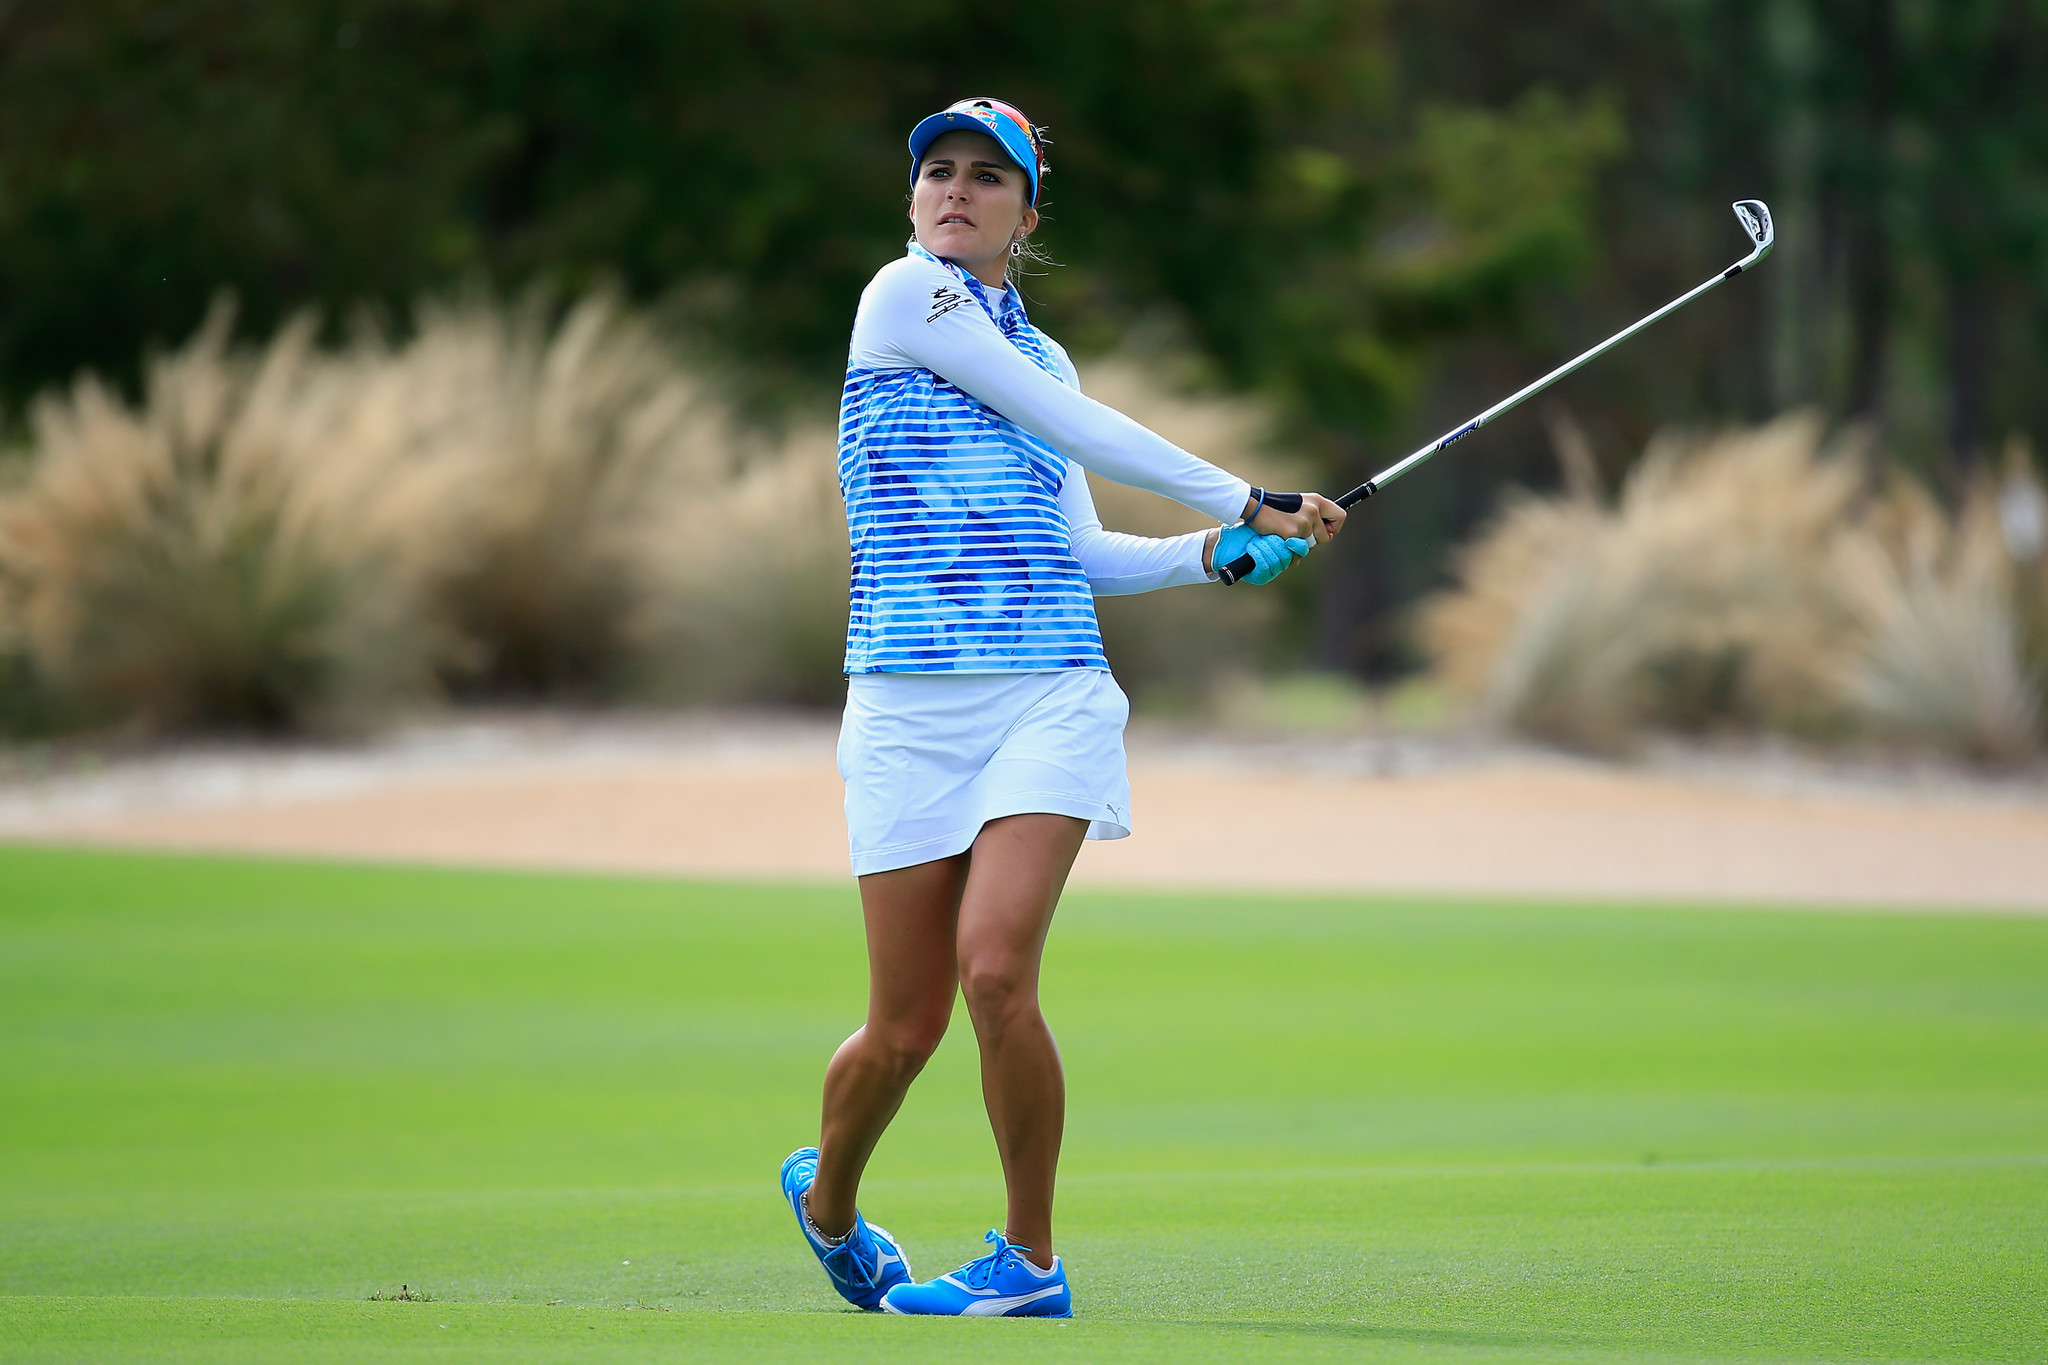 Lexi Thompson Adds Fun Factor To QBE Shootout